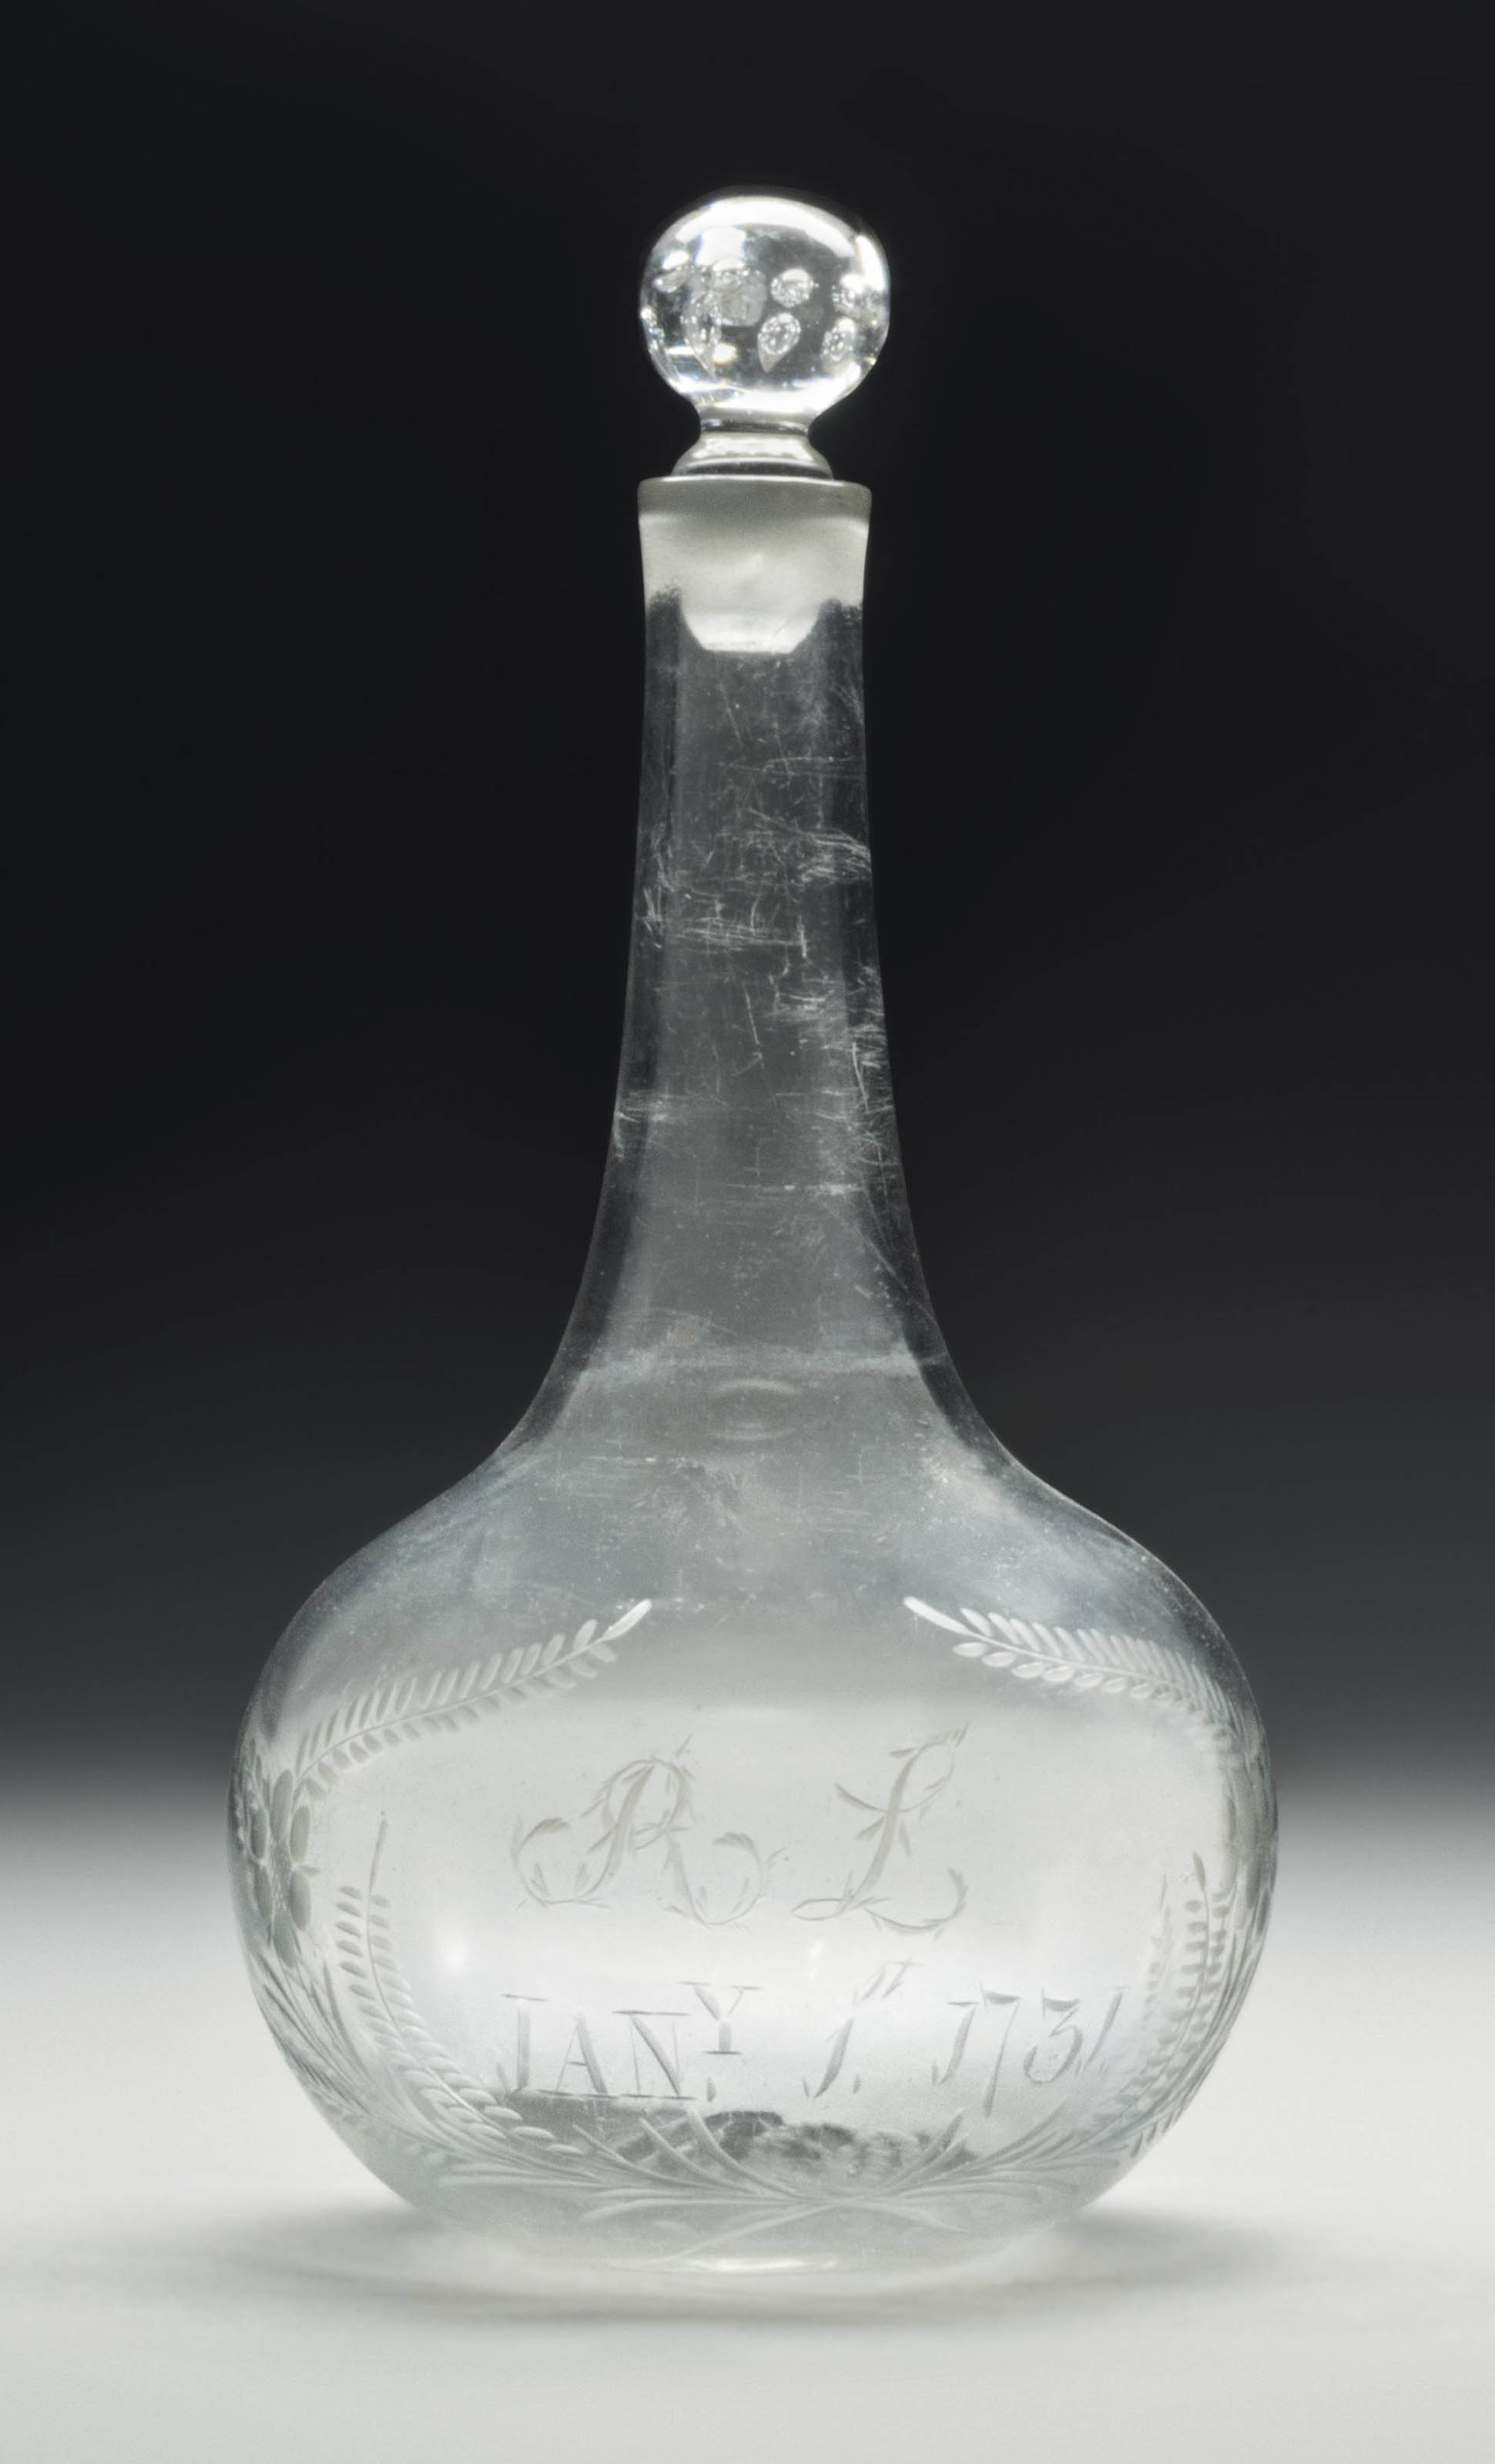 AN ENGLISH GLASS DATED ENGRAVE